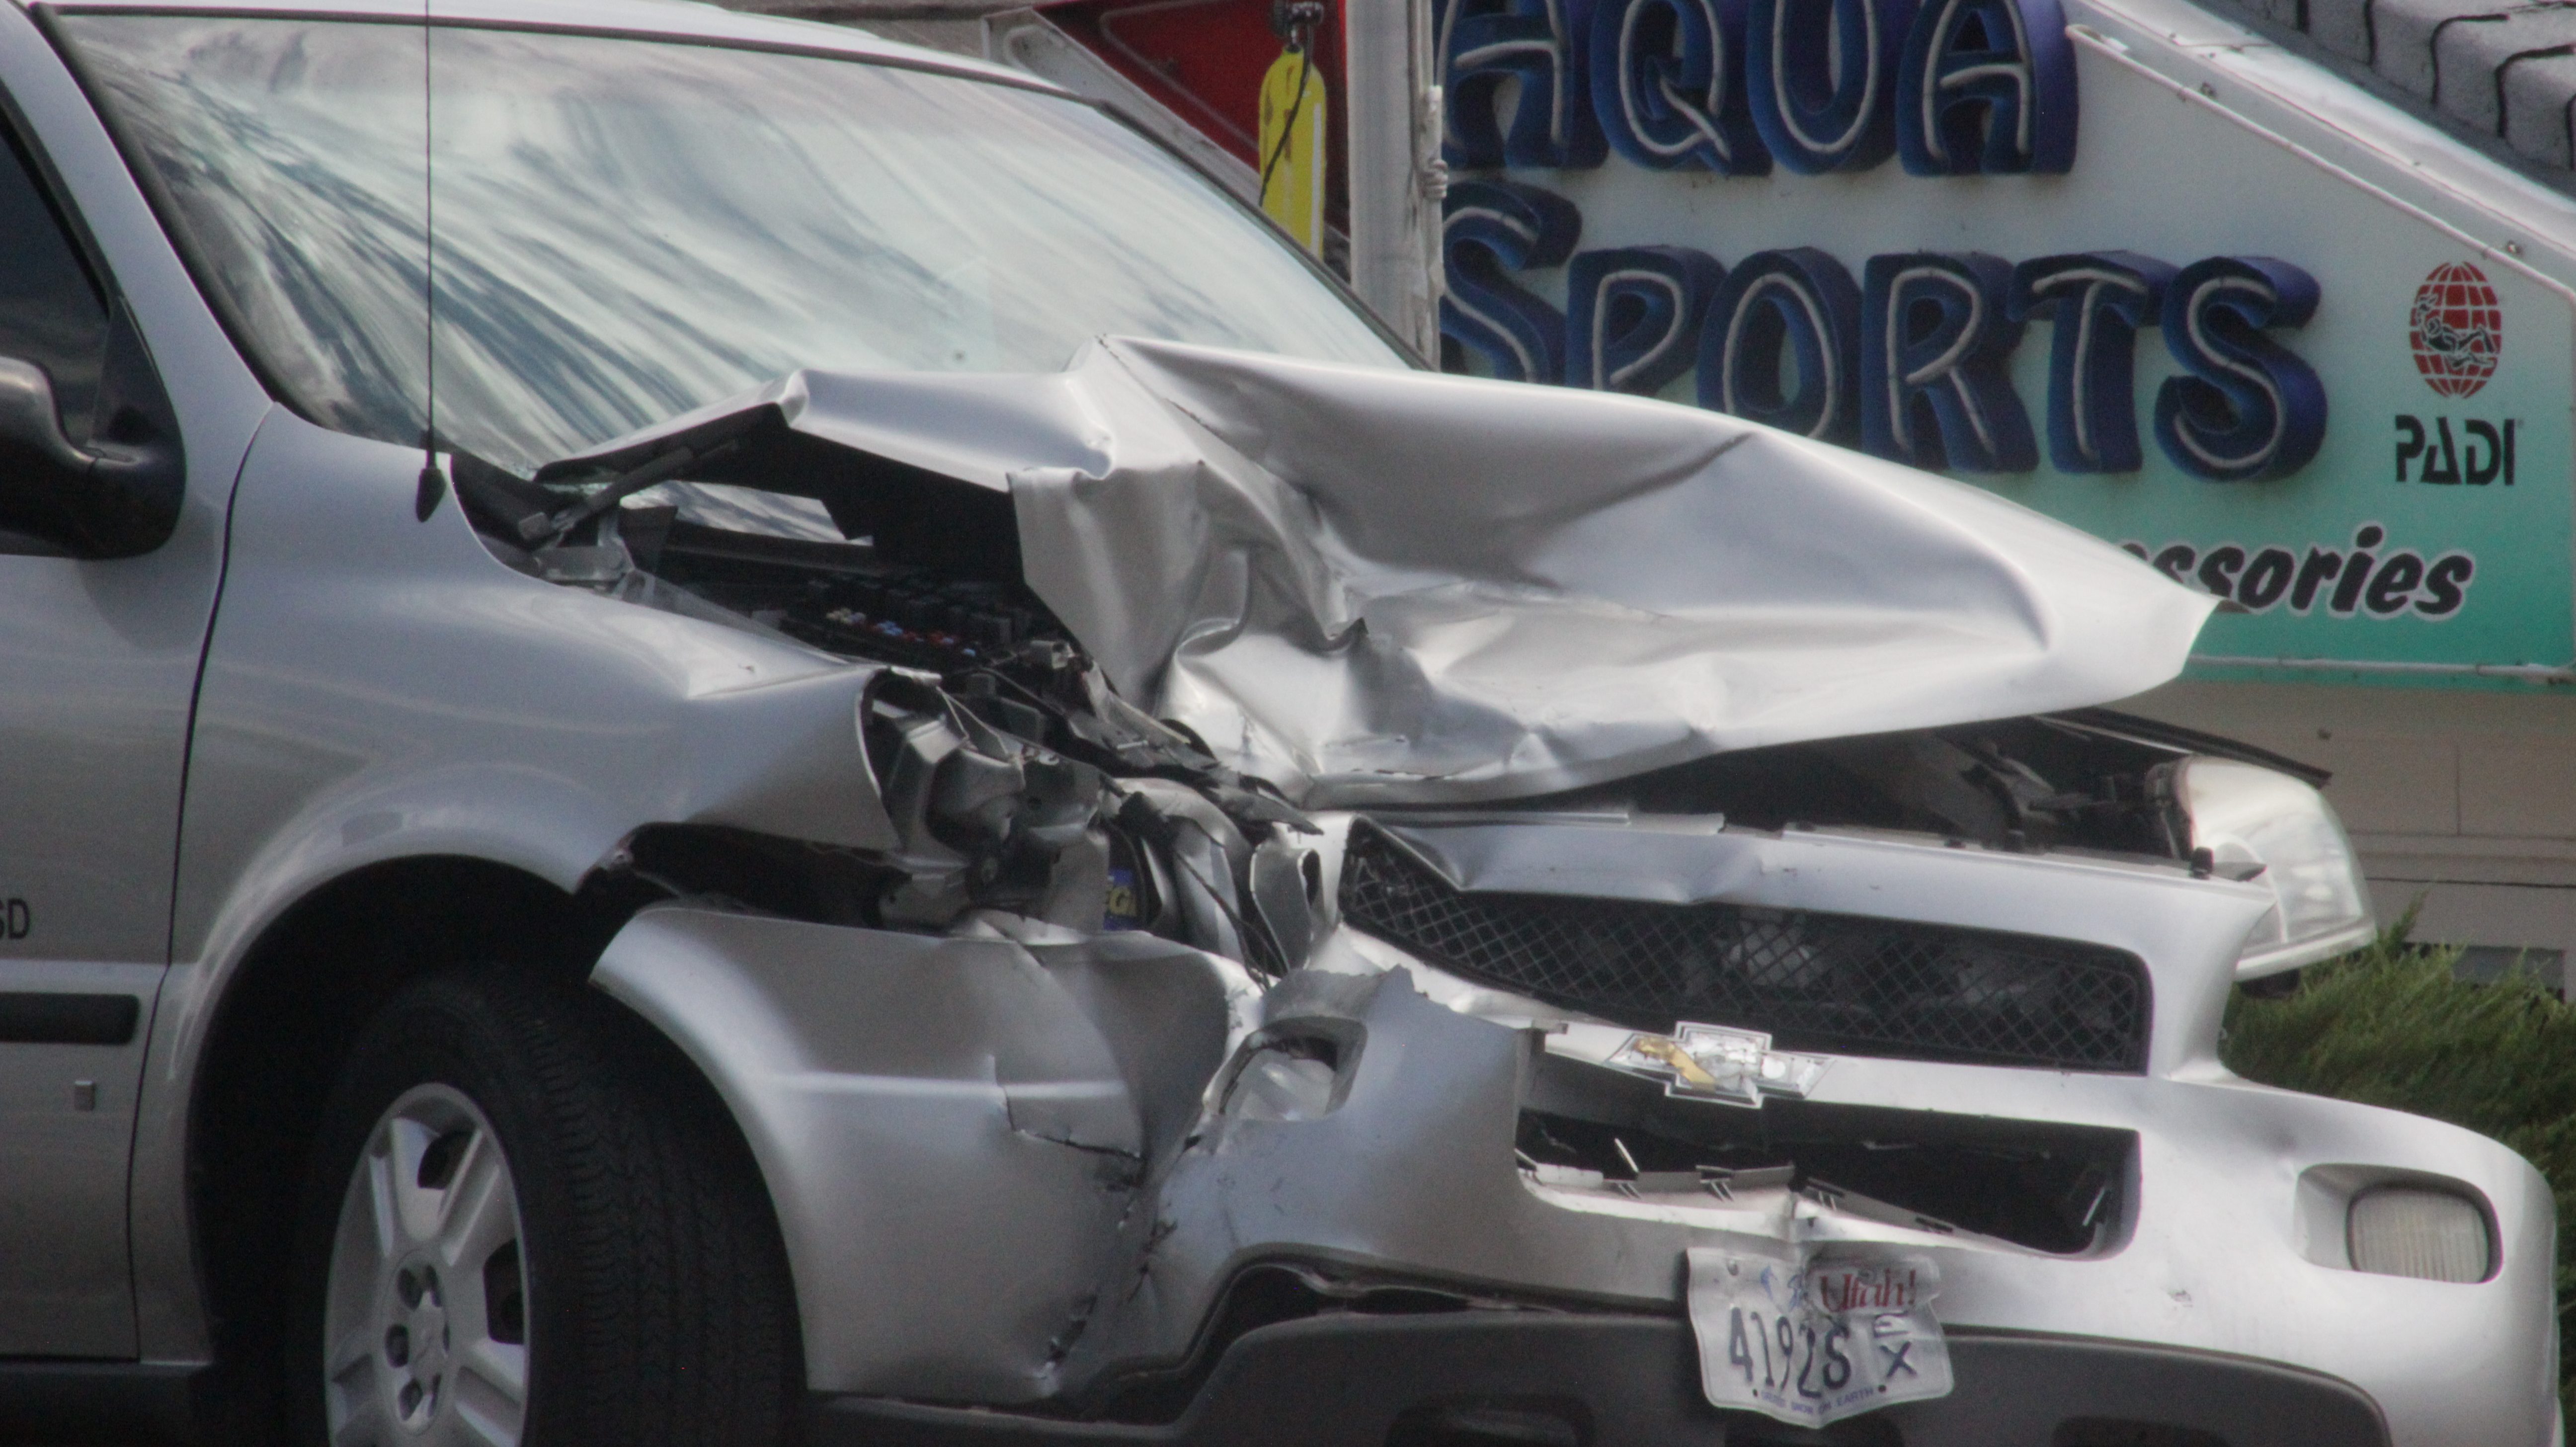 A collision between a Chevy truck and a Chevy minivan left both vehicles inoperable and resulted in a failure to yield citation for the driver of the truck, St. George, Utah, Aug 18, 2016 | Photo by Don Gilman, St. George News